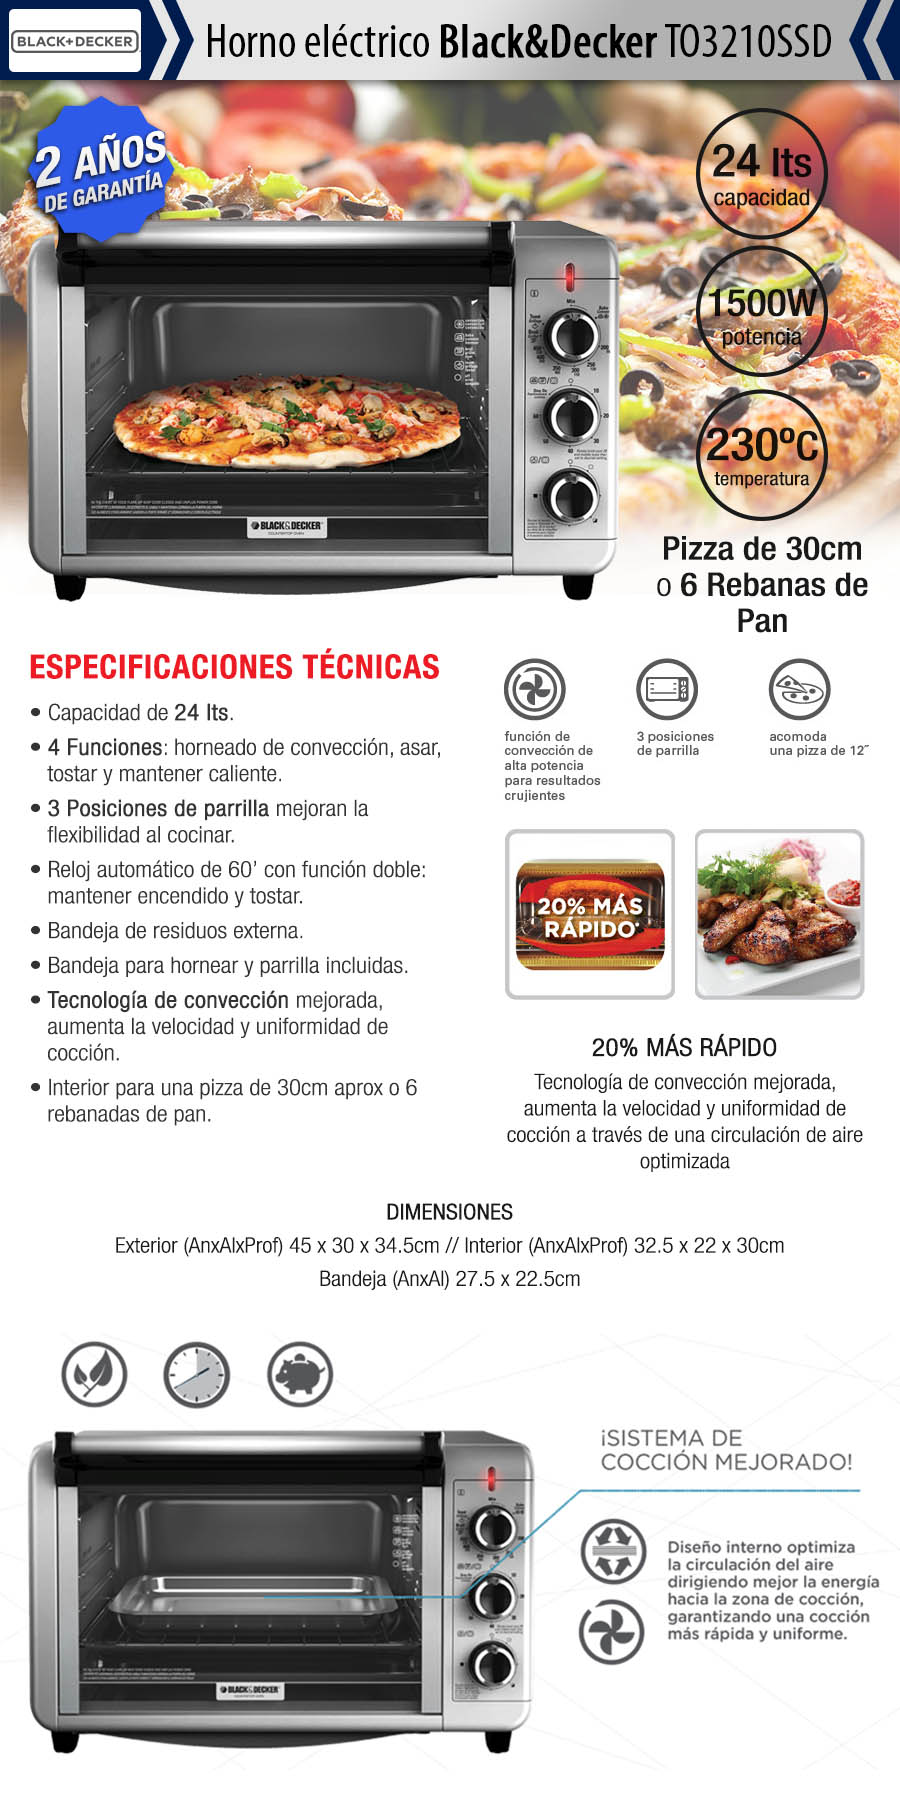 Hornos el ctricos horno electrico black decker to3210ssd for Horno electrico black decker